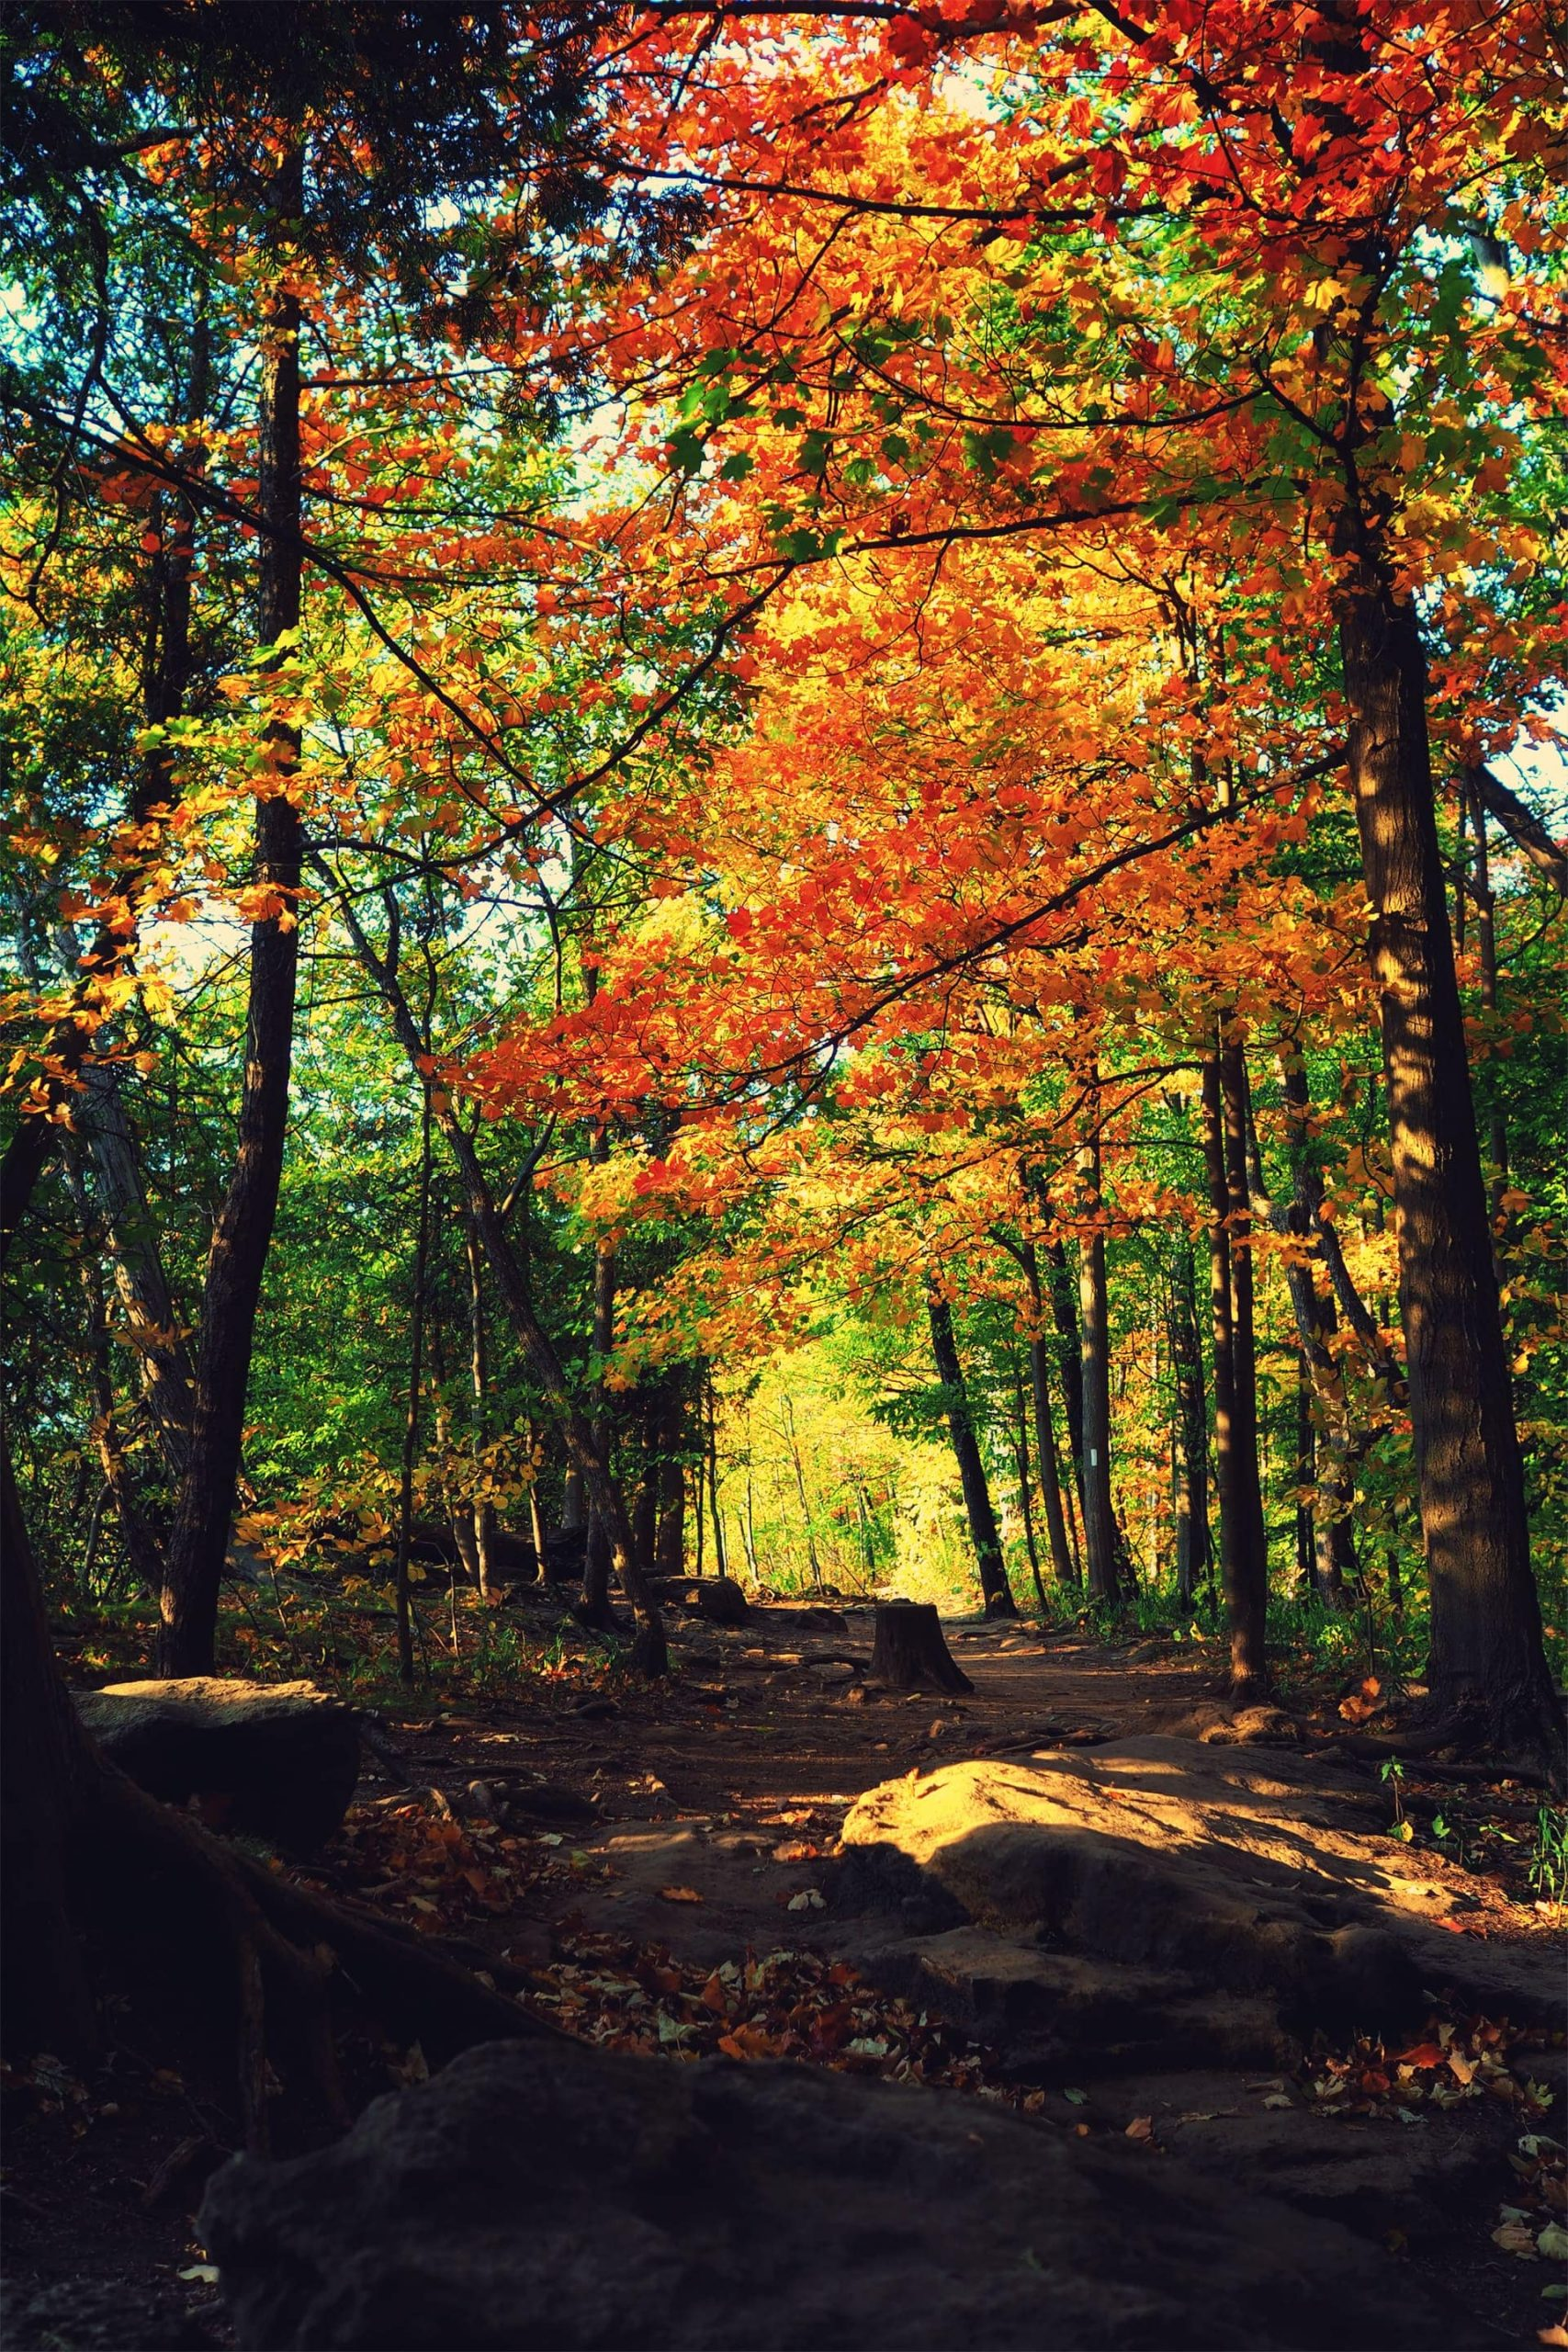 Lookout Trail: Best Fall Hike Date Spot in Grimsby